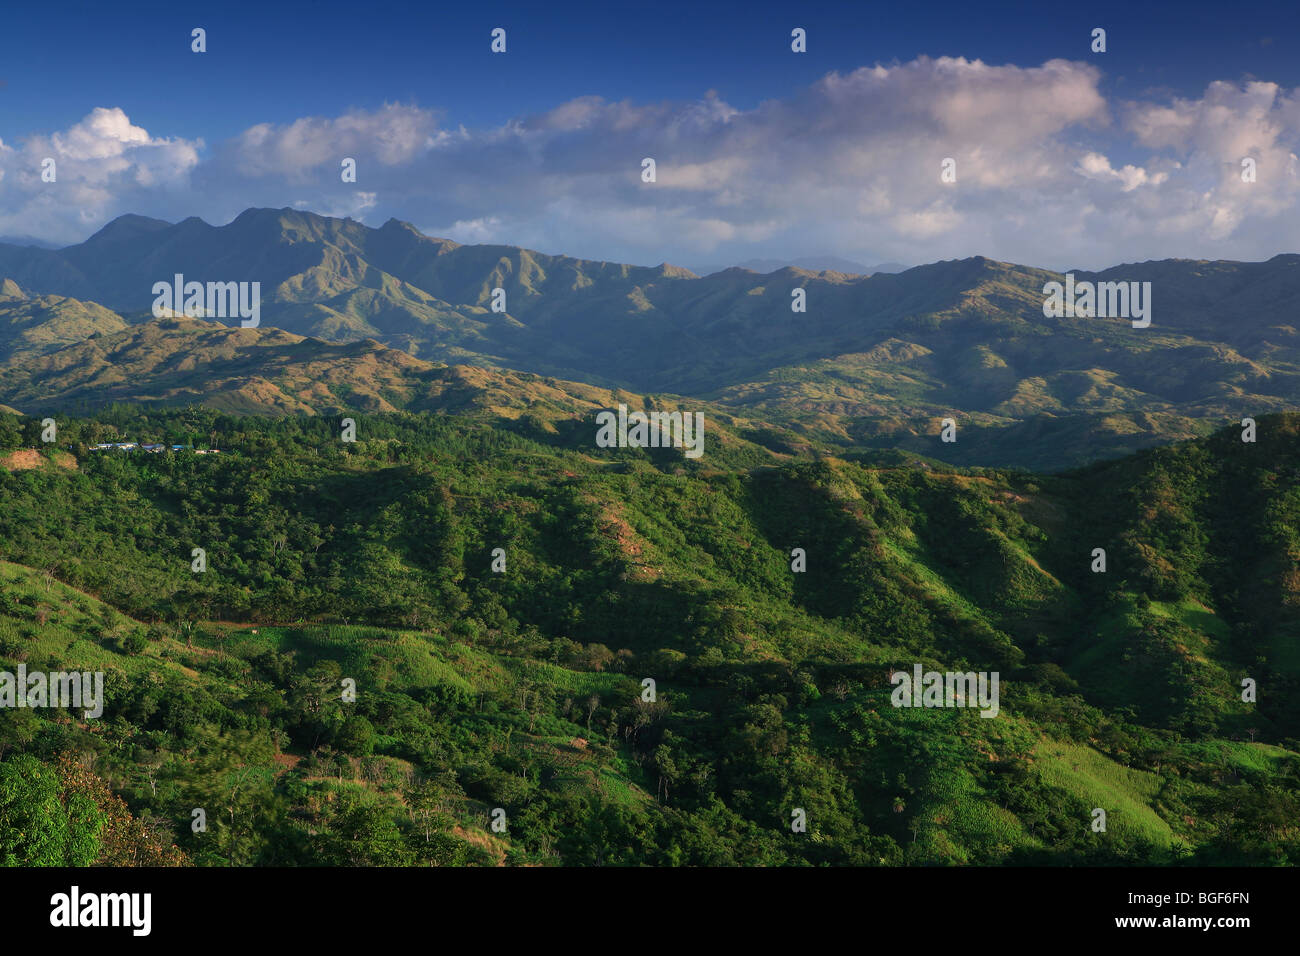 The beautiful highlands of the Cocle province, Cordillera Central, Republic of Panama. - Stock Image